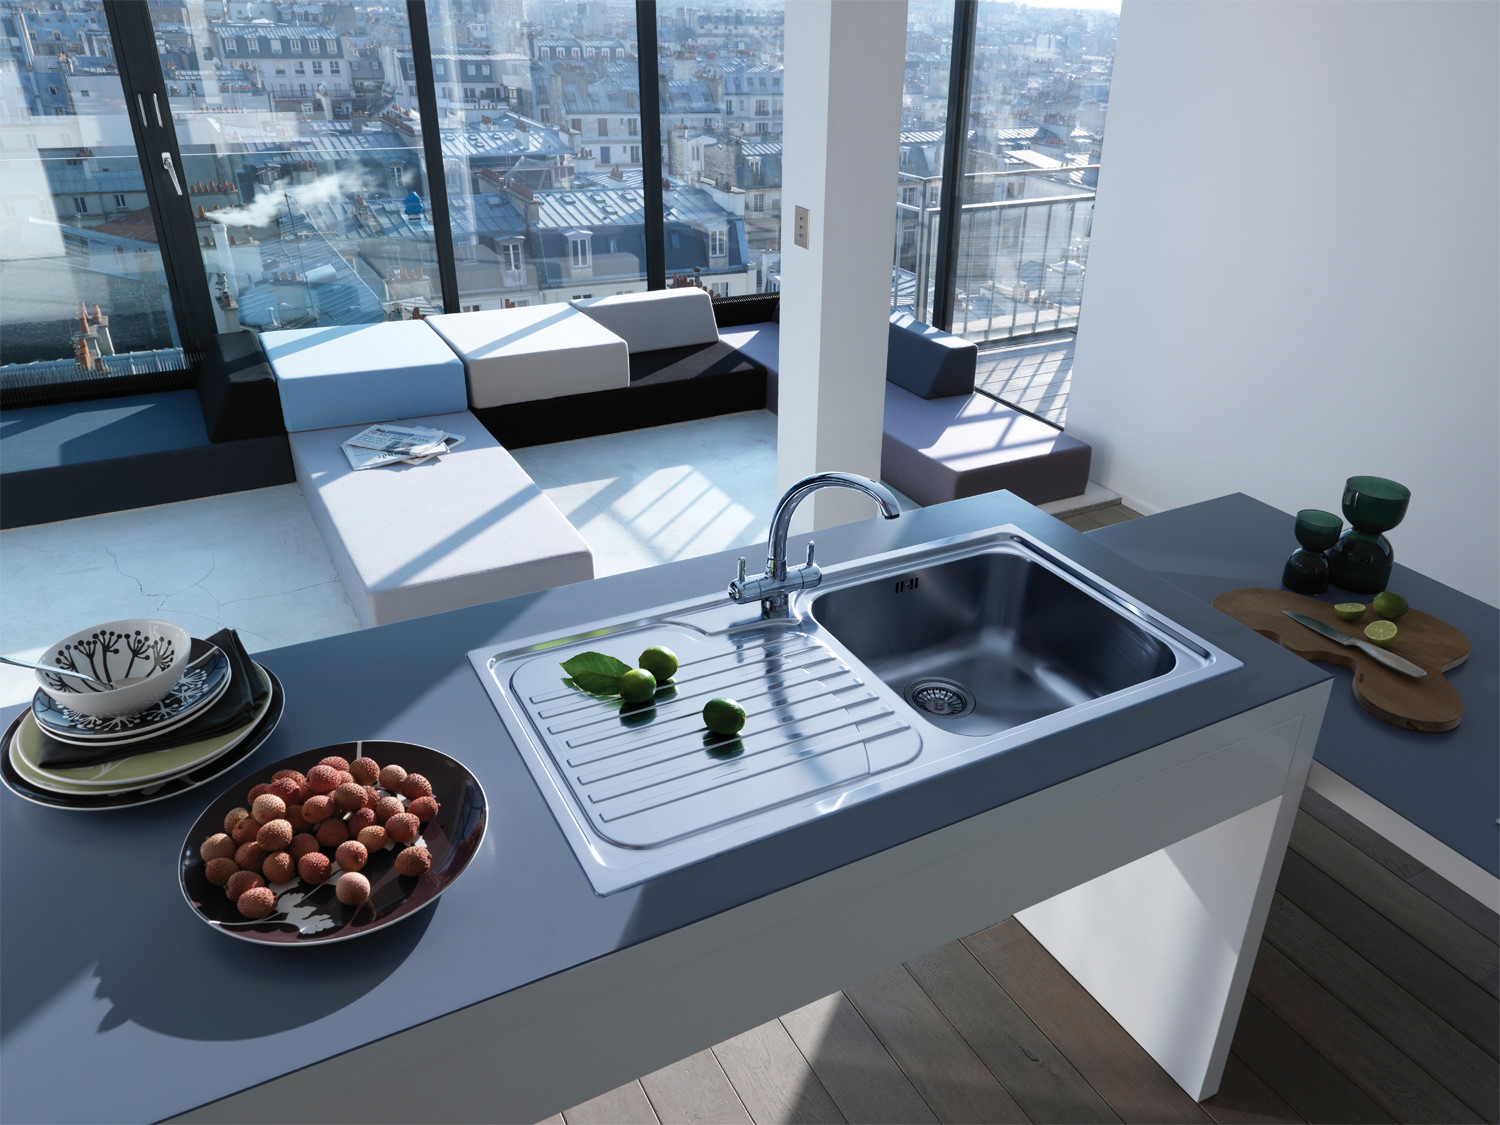 Franke Galassia Sink : ... of Franke Galassia GAX 611 Stainless Steel 1.0 Bowl Kitchen Inset Sink